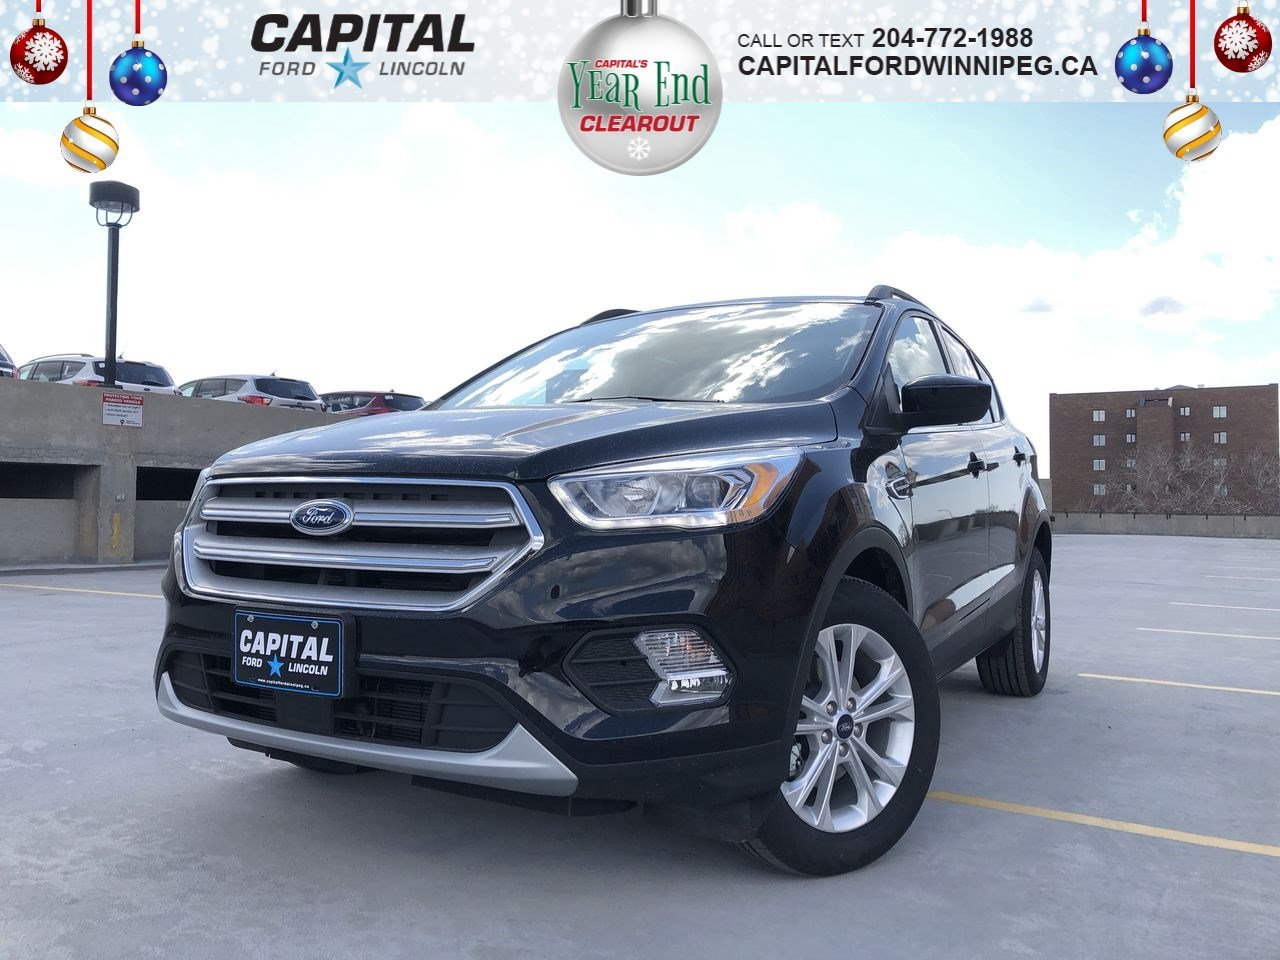 New 2019 Ford Escape *SEL*FWD*Heated Seats*Adaptive Cruise*Rearview Camera*Power Liftgate